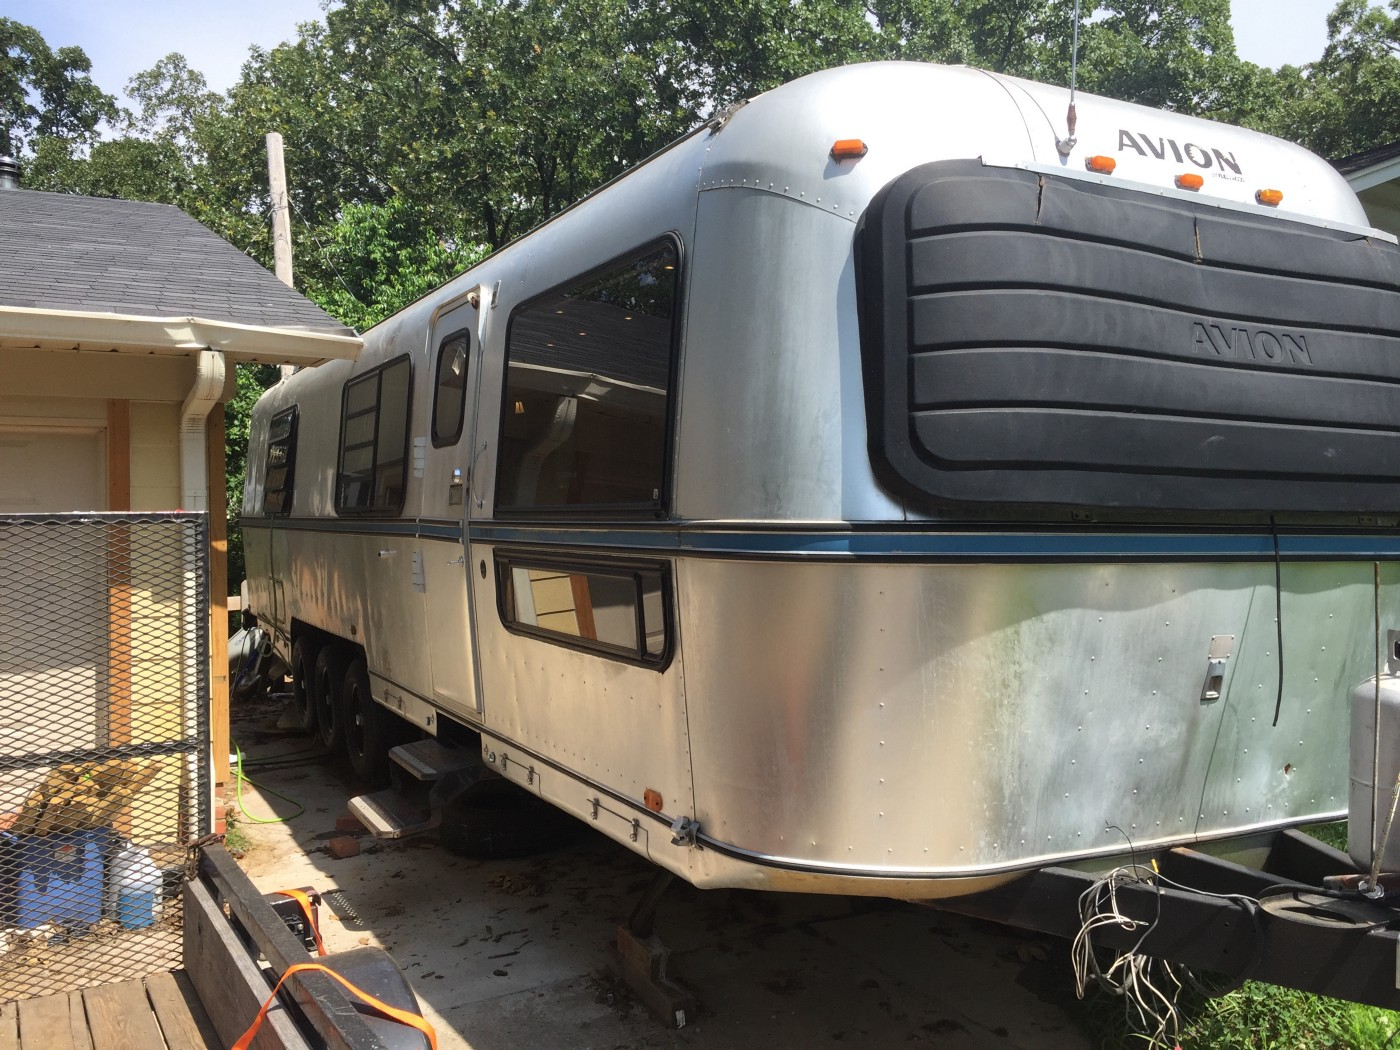 1988 RV: A Filmmaker's #TinyHome Remodel - Bailey Eubanks - Medium